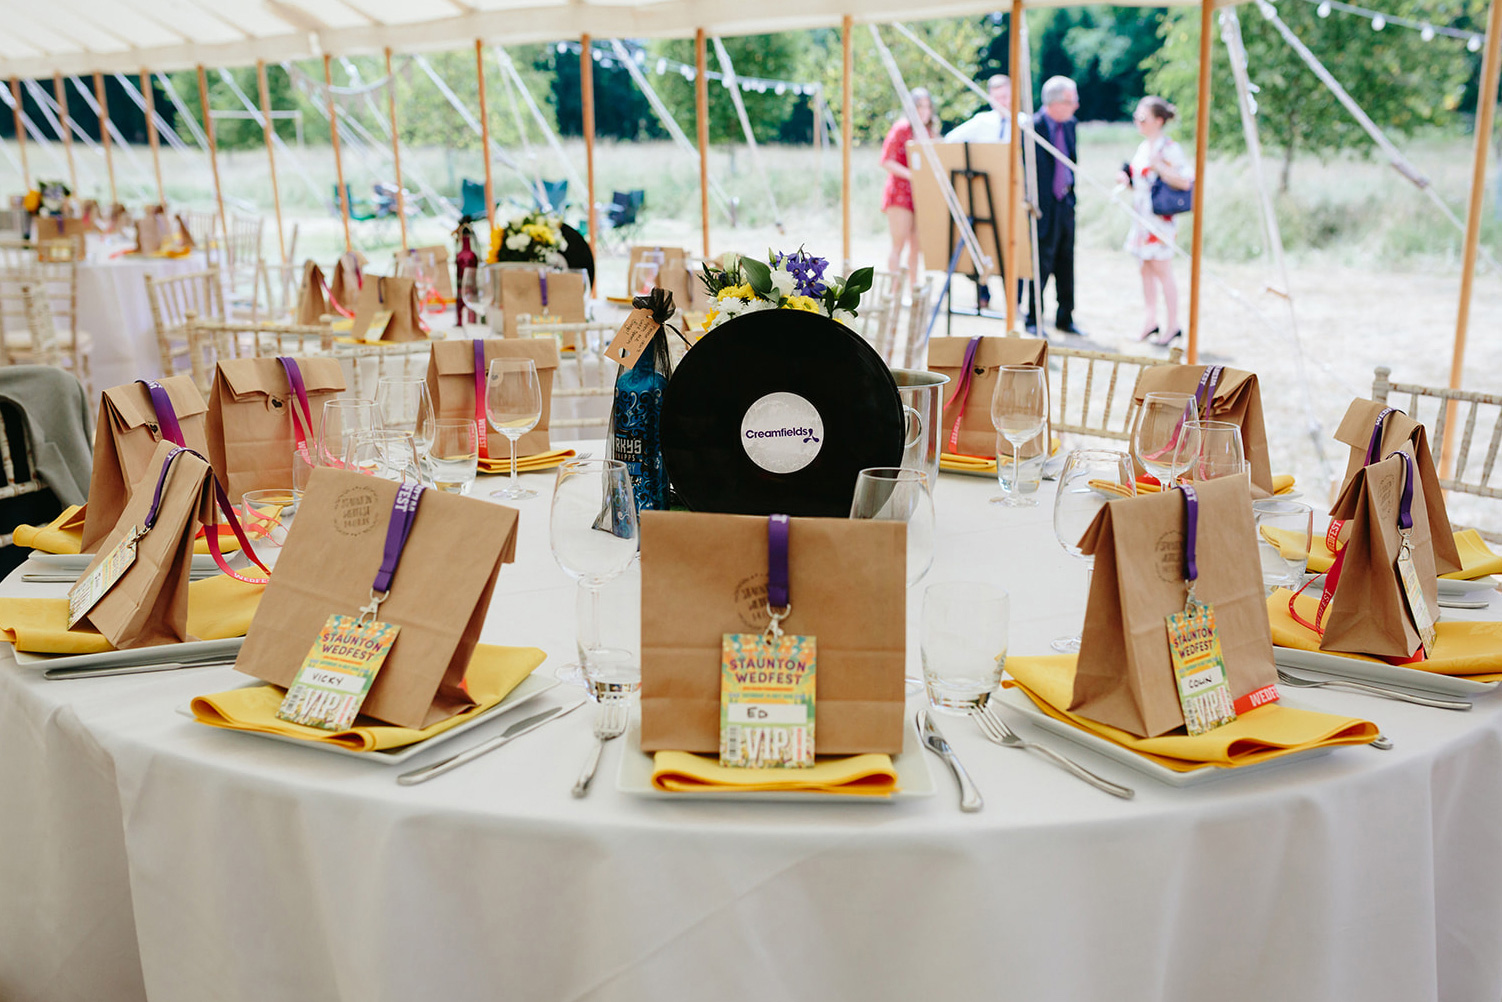 festival weddings table decoration lanyards favours vinyl records